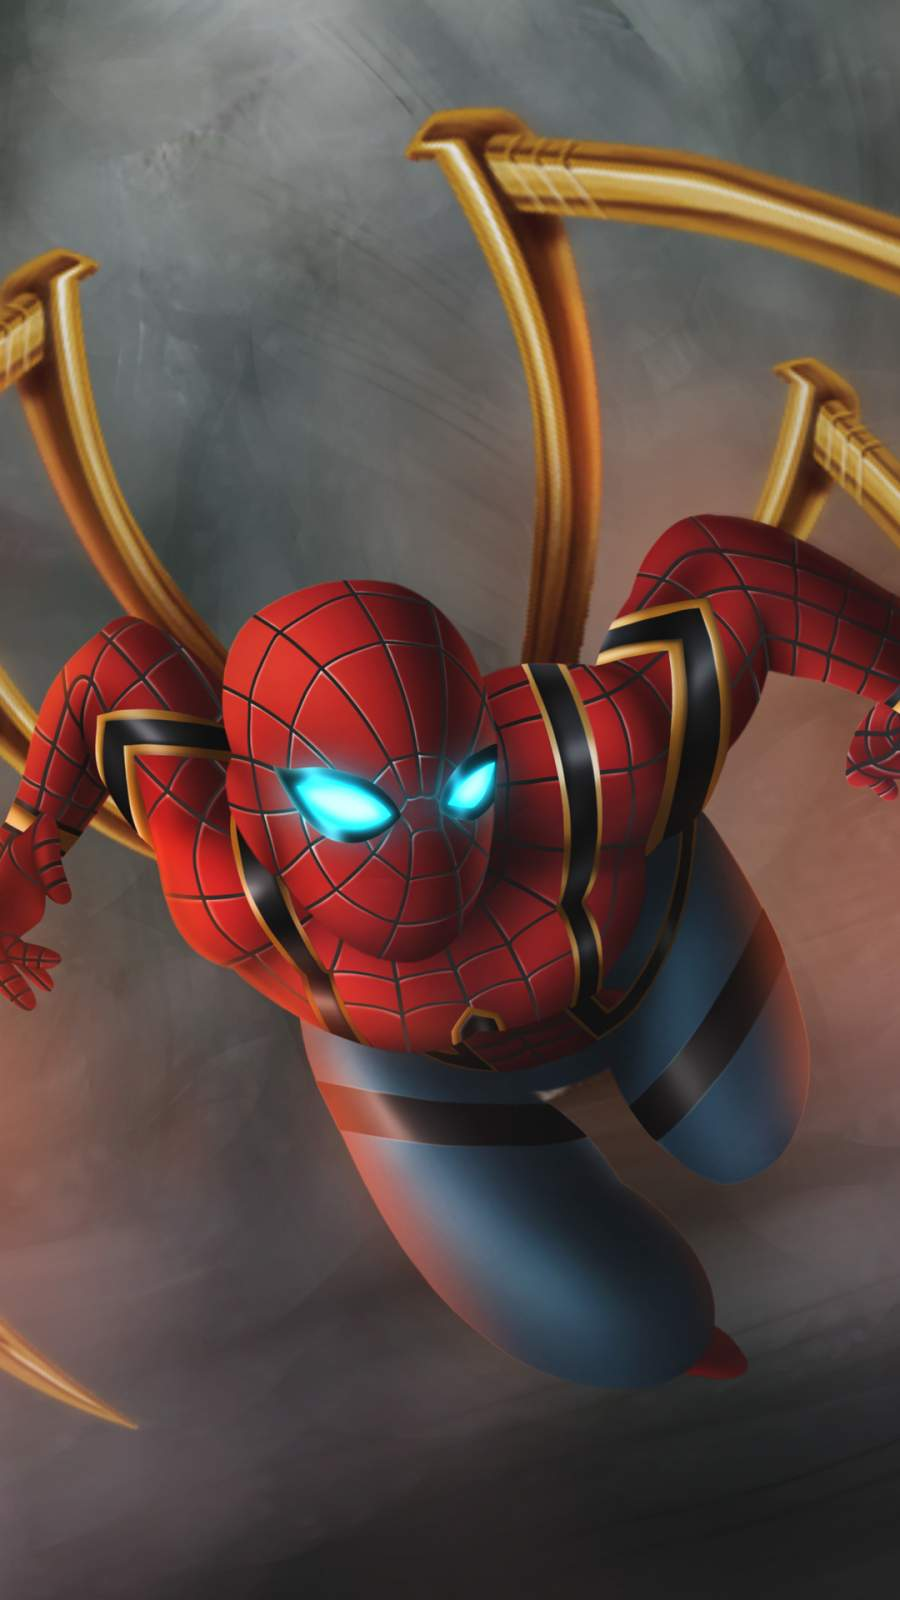 Spiderman Wallpapers for iPhone